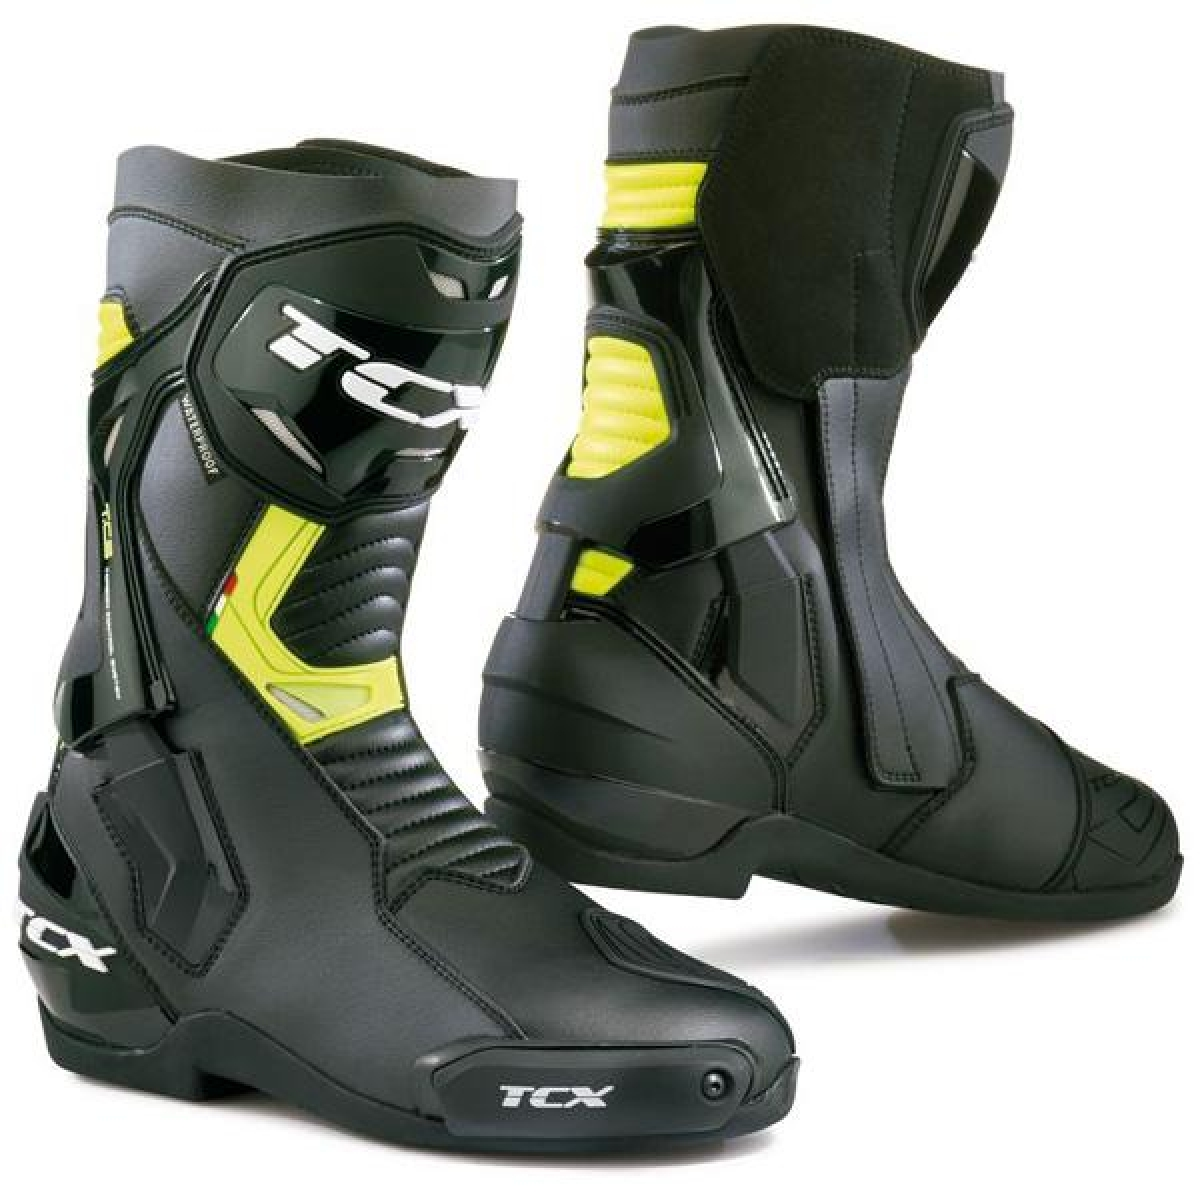 TCX ST-Fighter riding boots